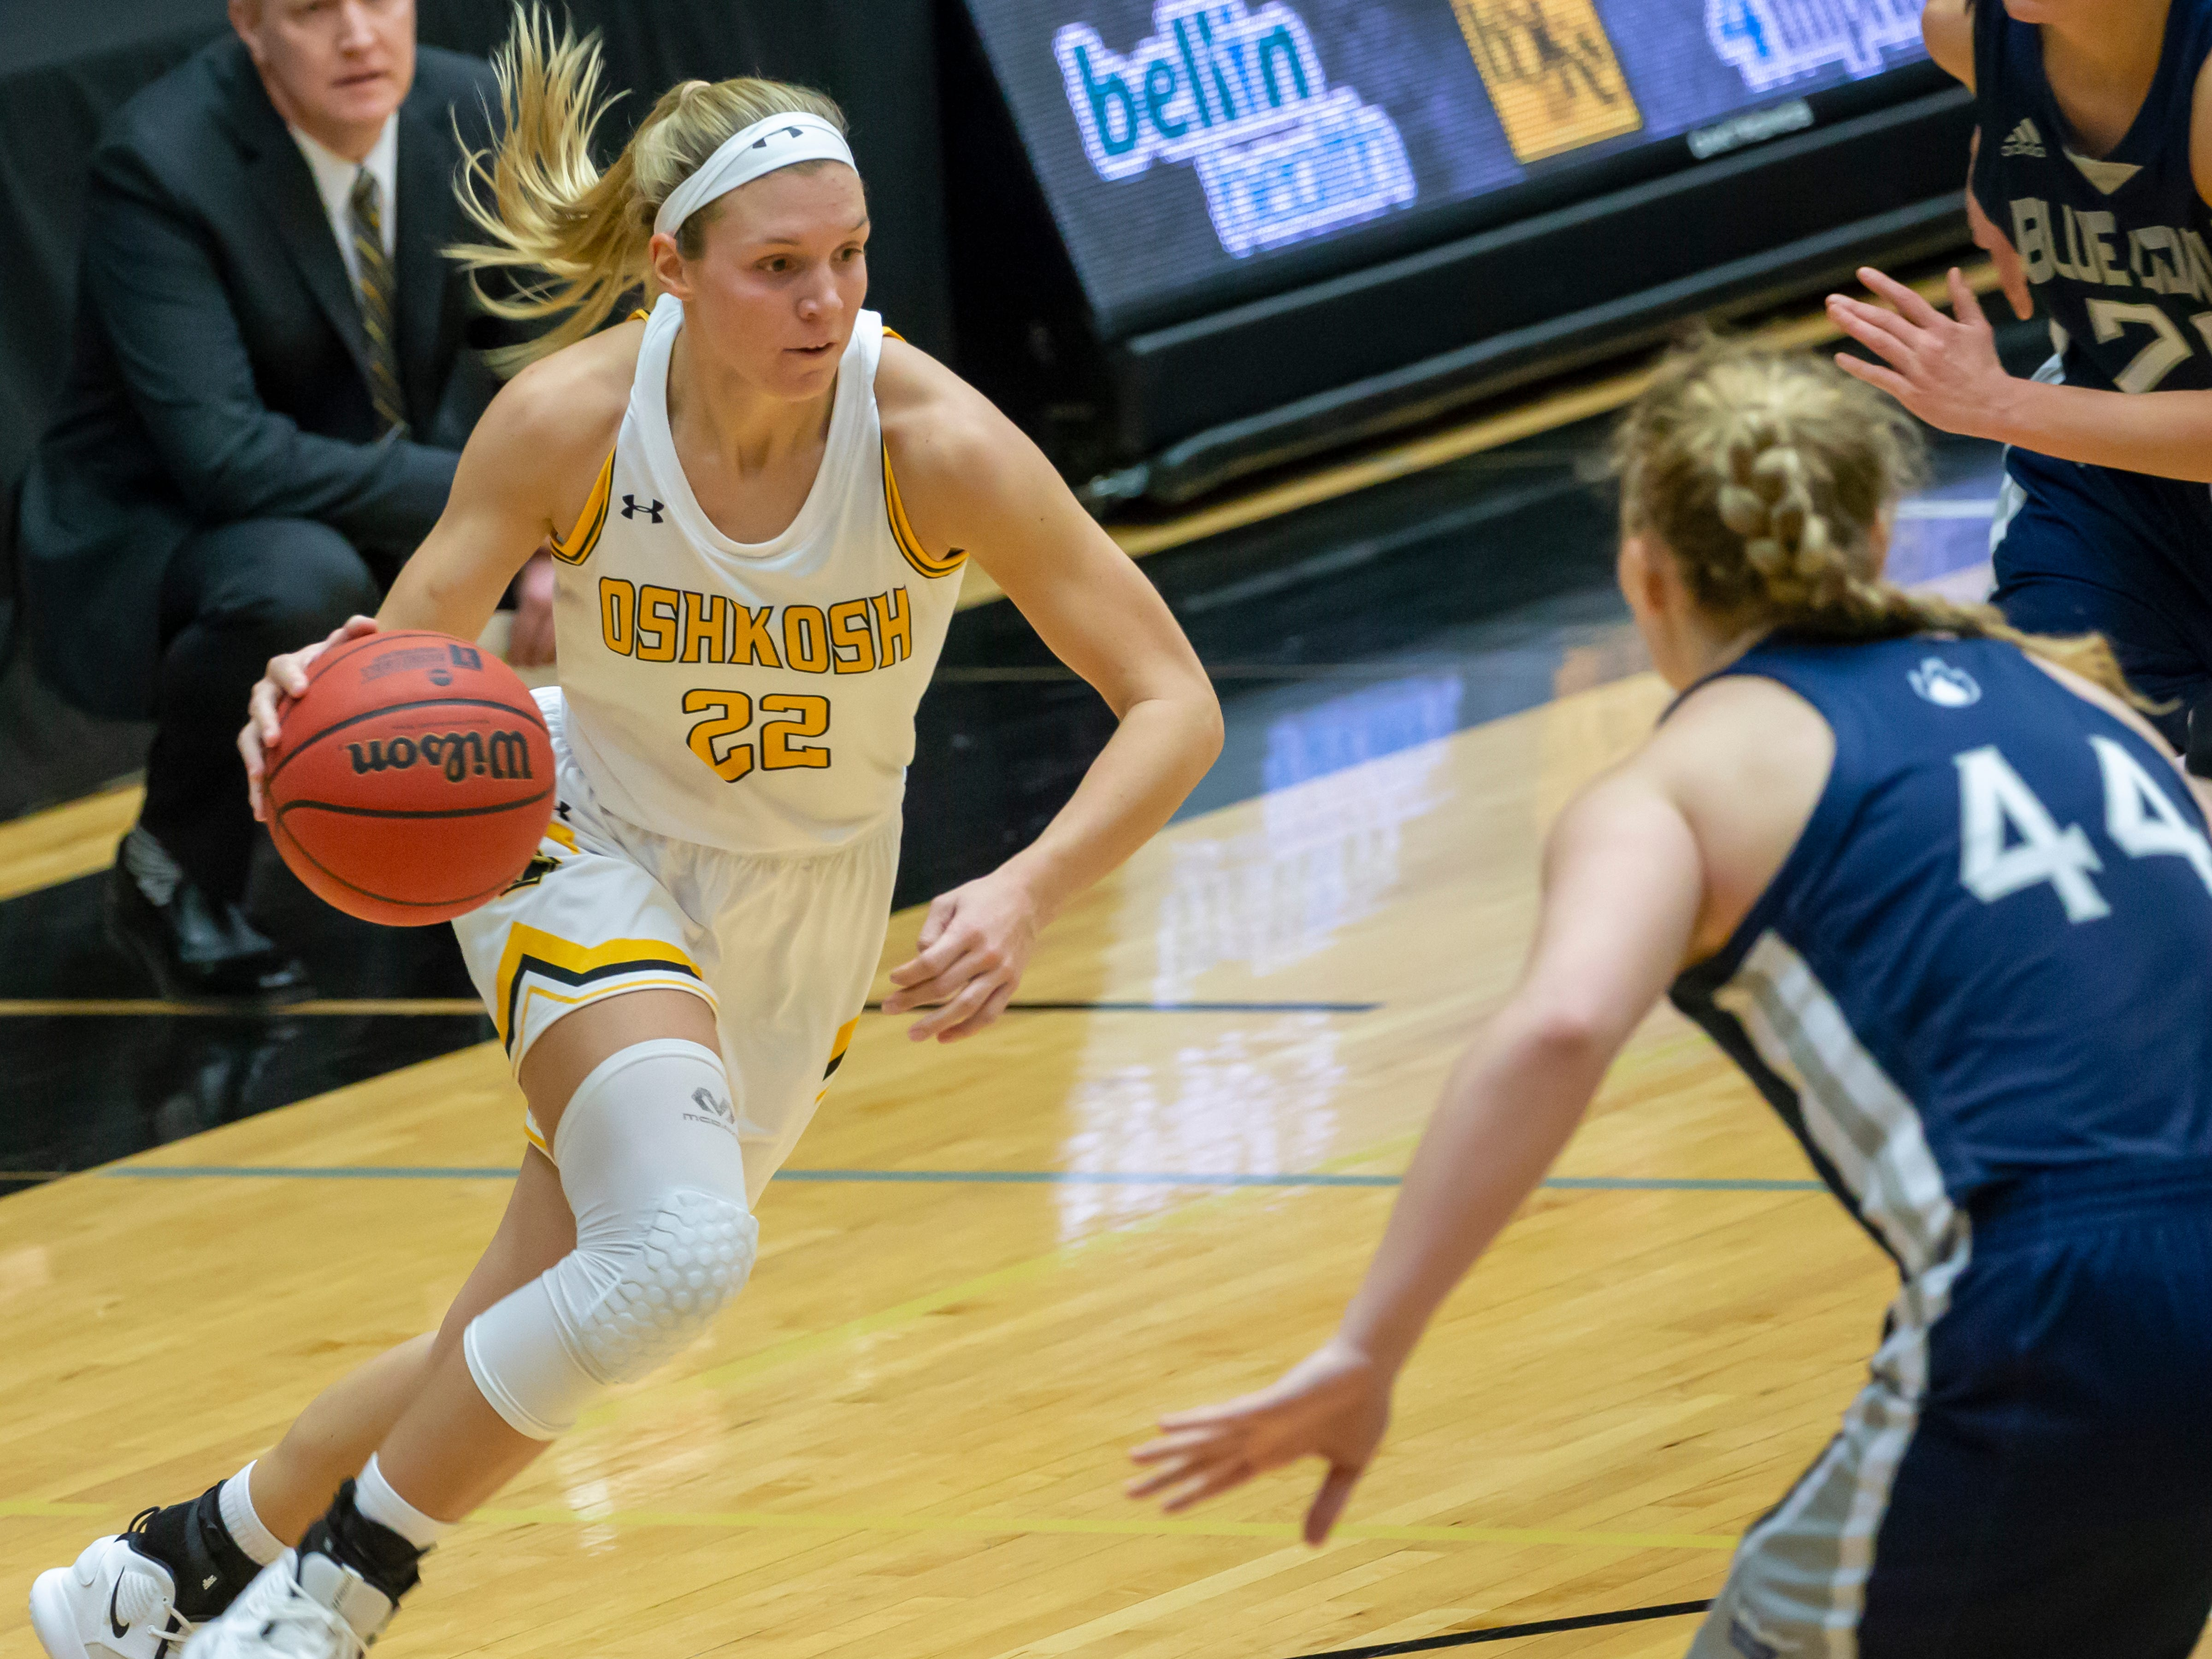 UW-Oshkosh's Melanie Schneider drives the ball to the basket at the Kolf Sports Center on Saturday, January 5, 2019.